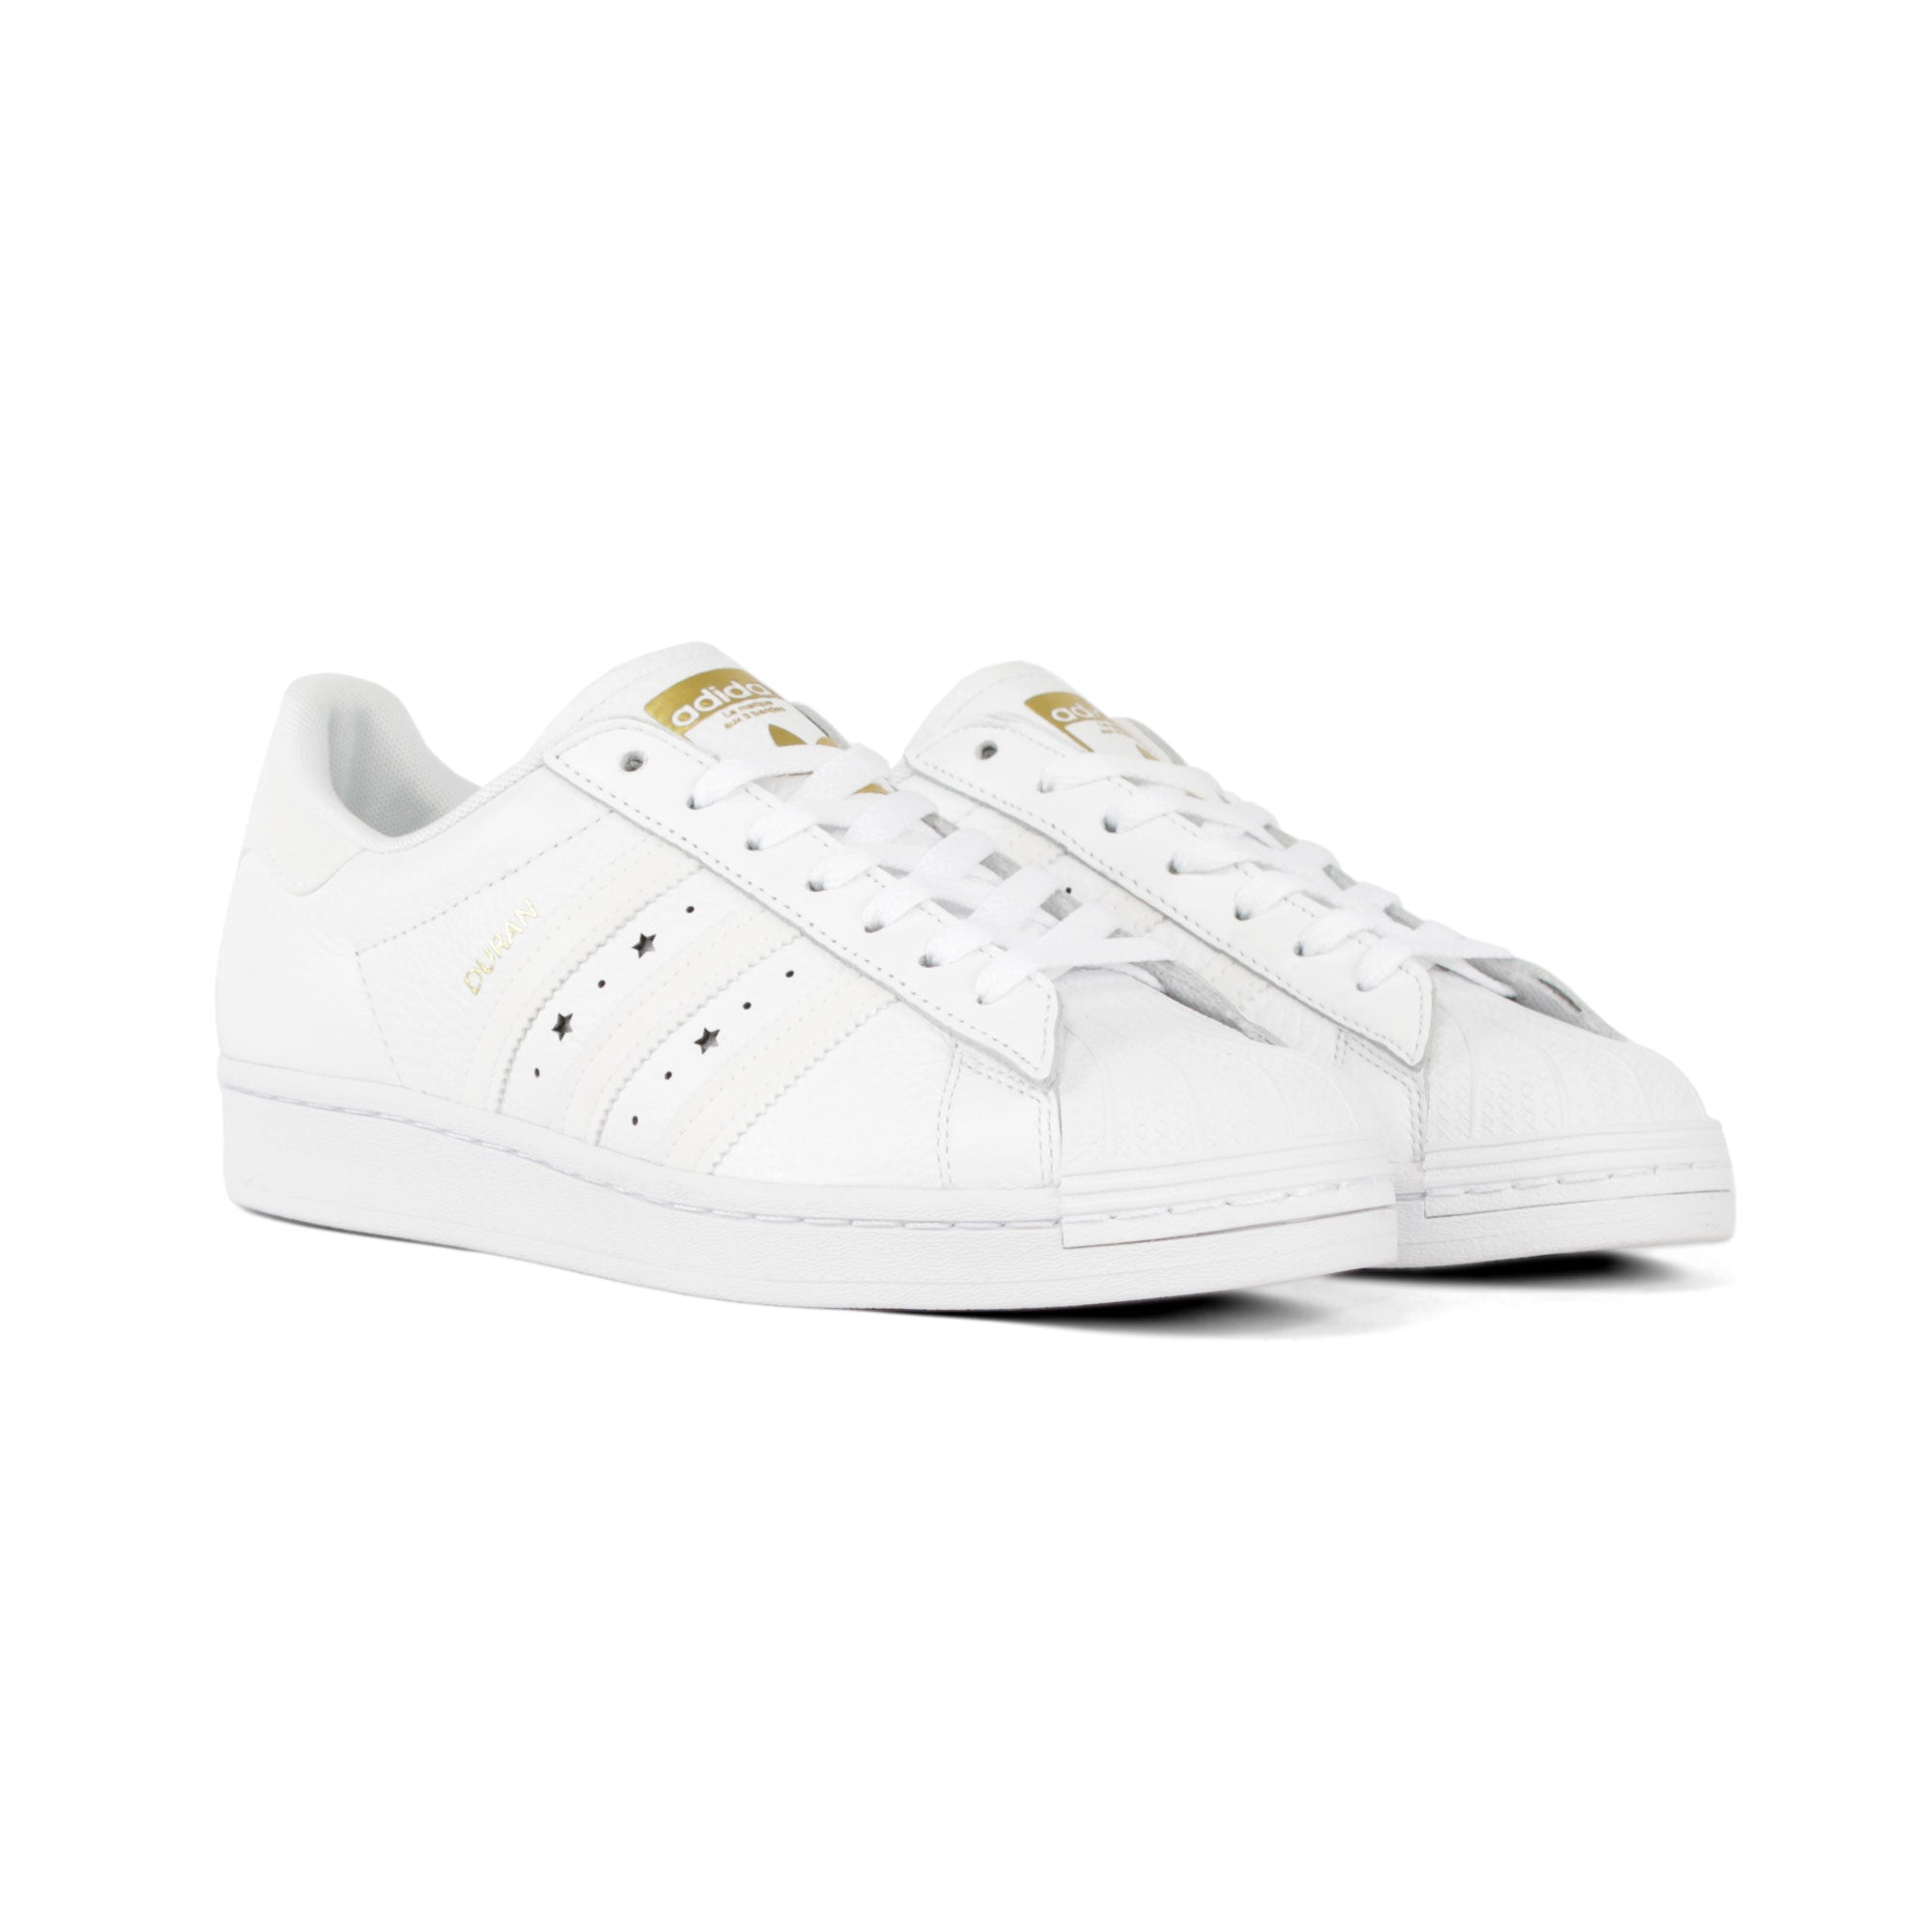 Adidas Superstar ADV x Duran Product Photo #2